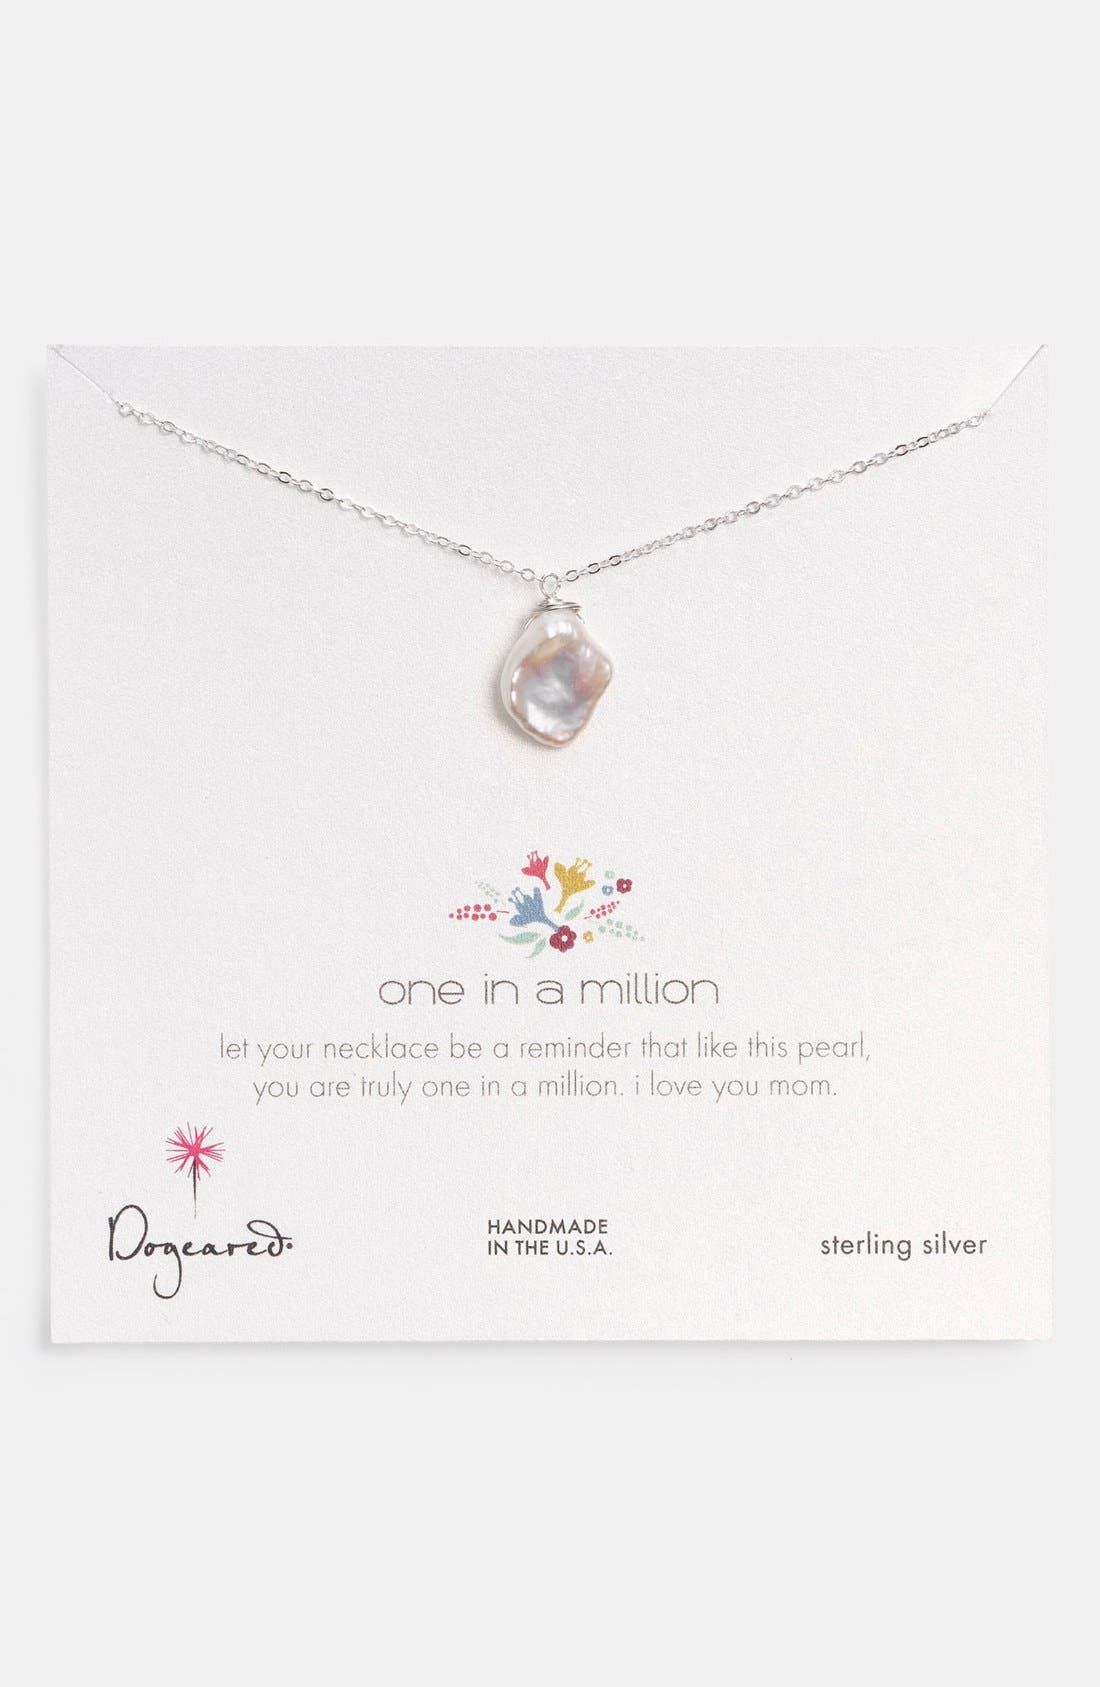 Alternate Image 1 Selected - Dogeared 'Reminder - One in a Million' Keishi Pearl Pendant Necklace